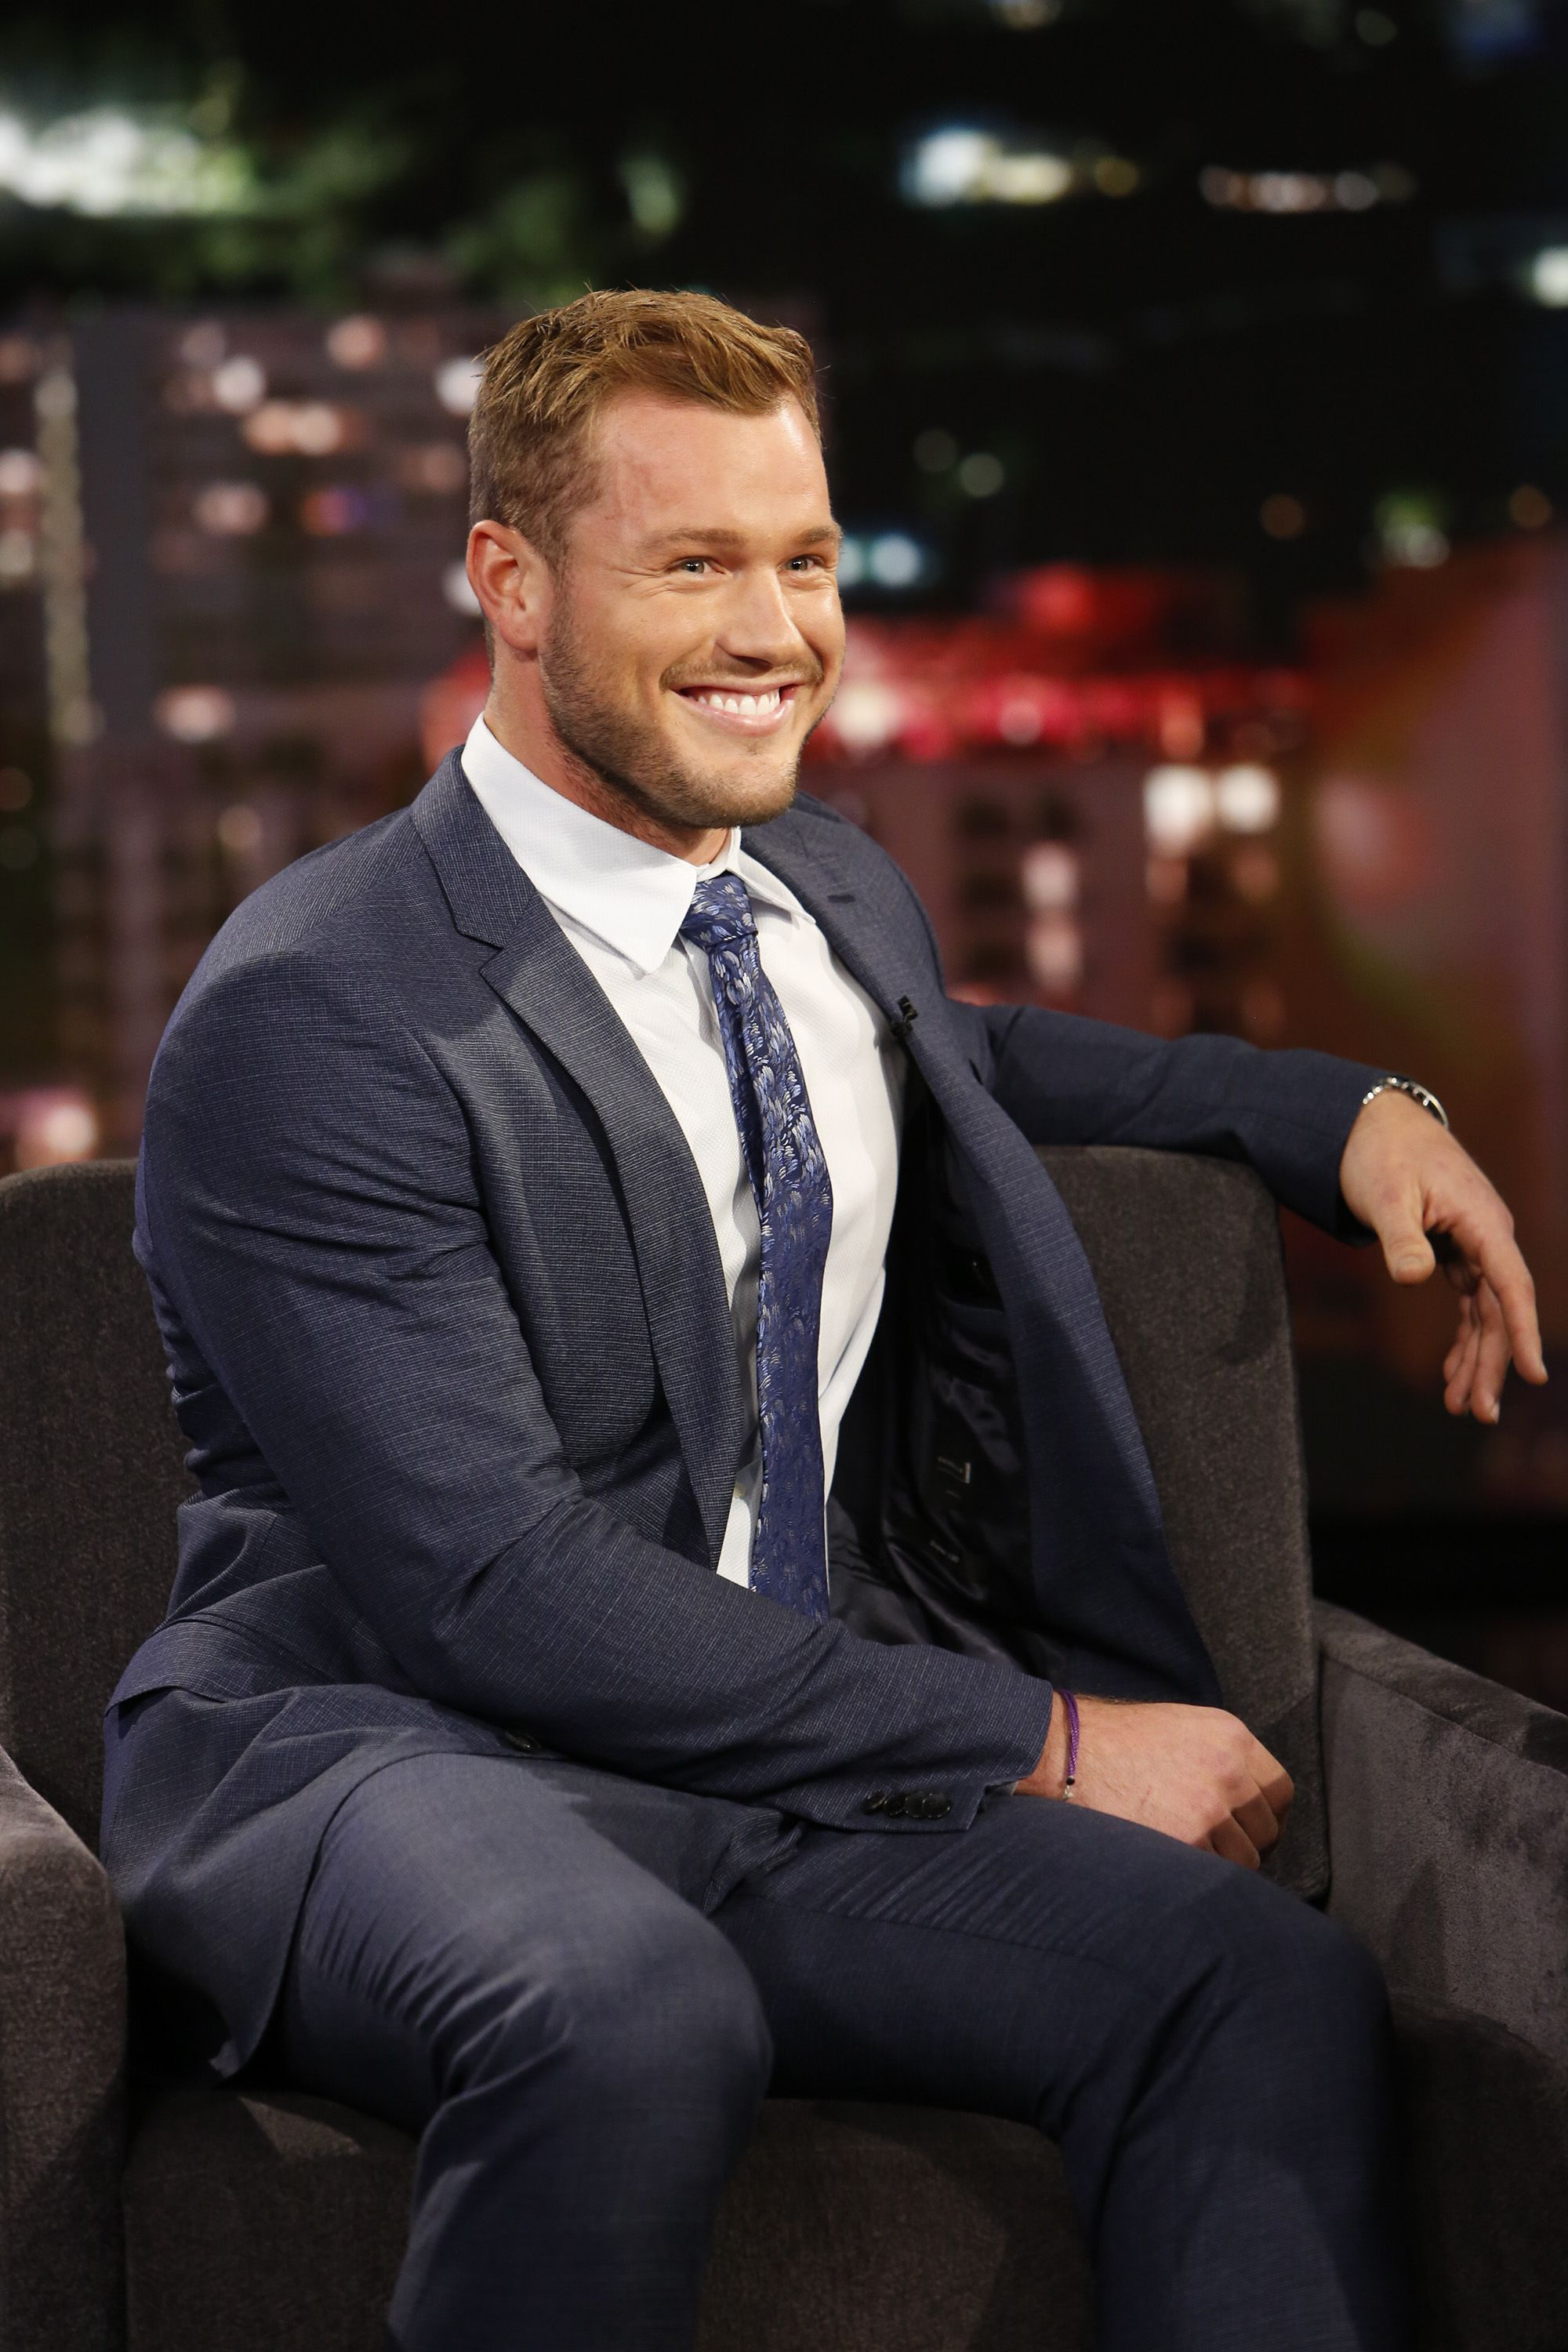 Colton Underwood Revealed 'The Bachelor' Secrets on 'This American Life'